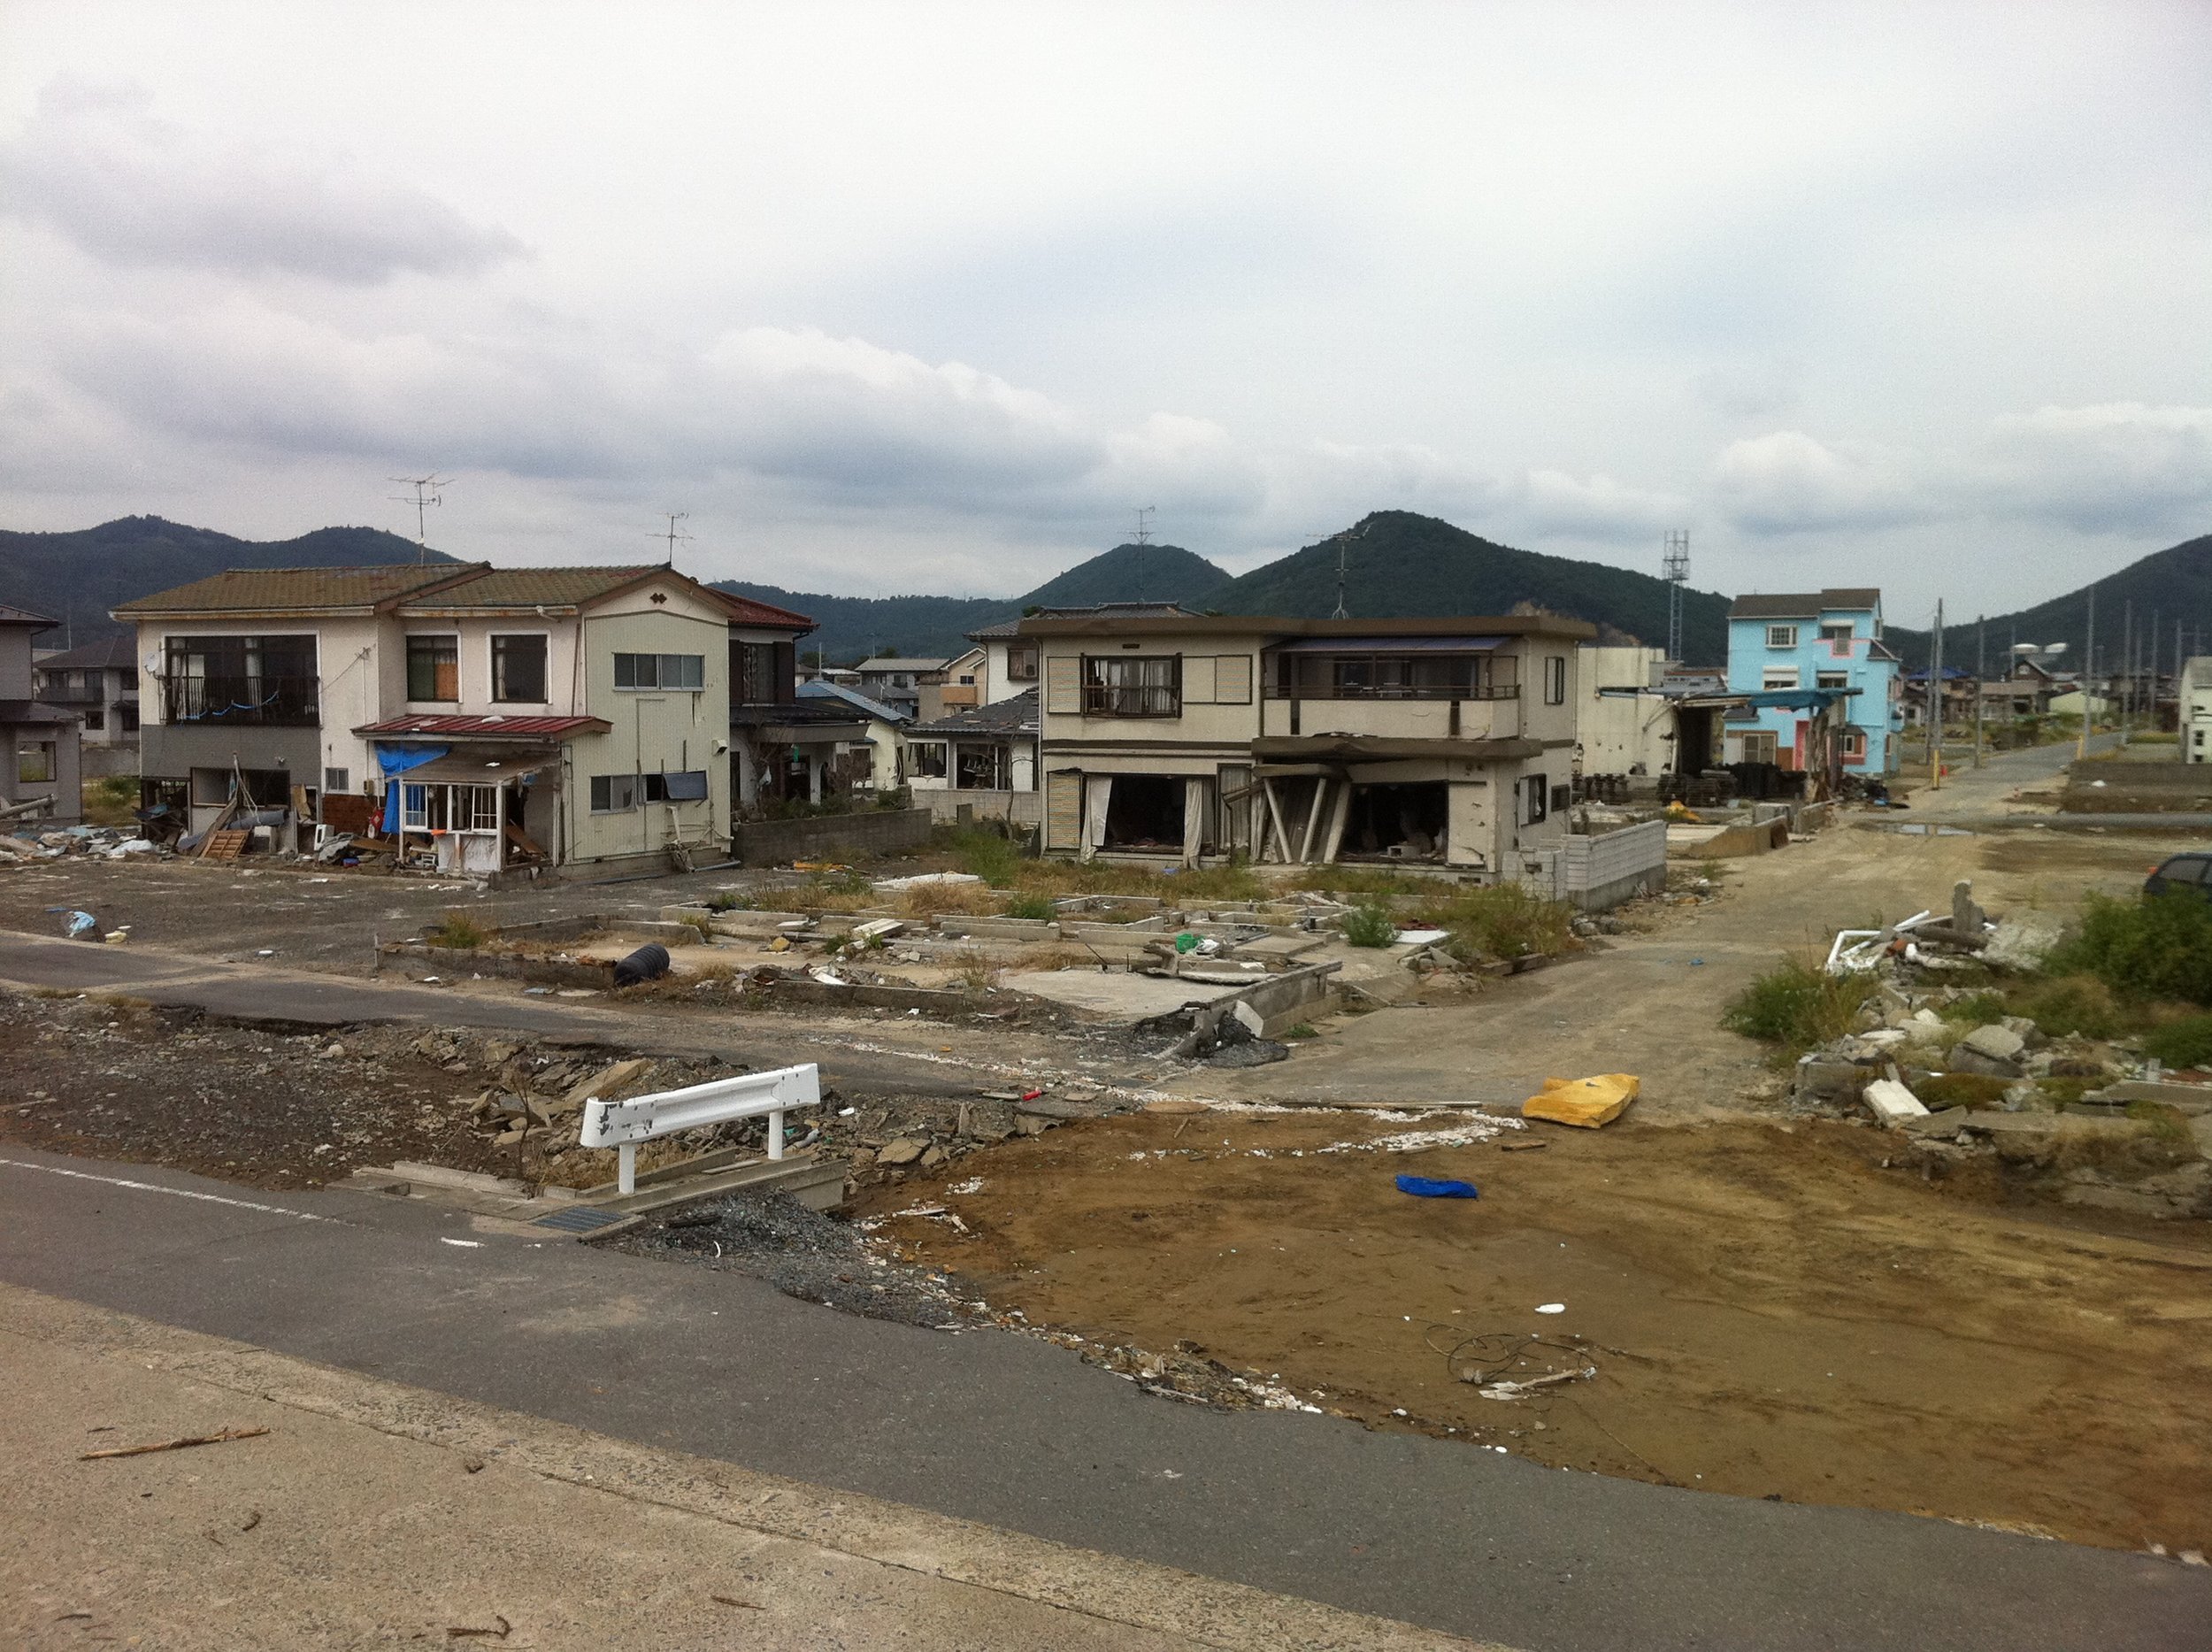 Tsunami destroyed homes 2011